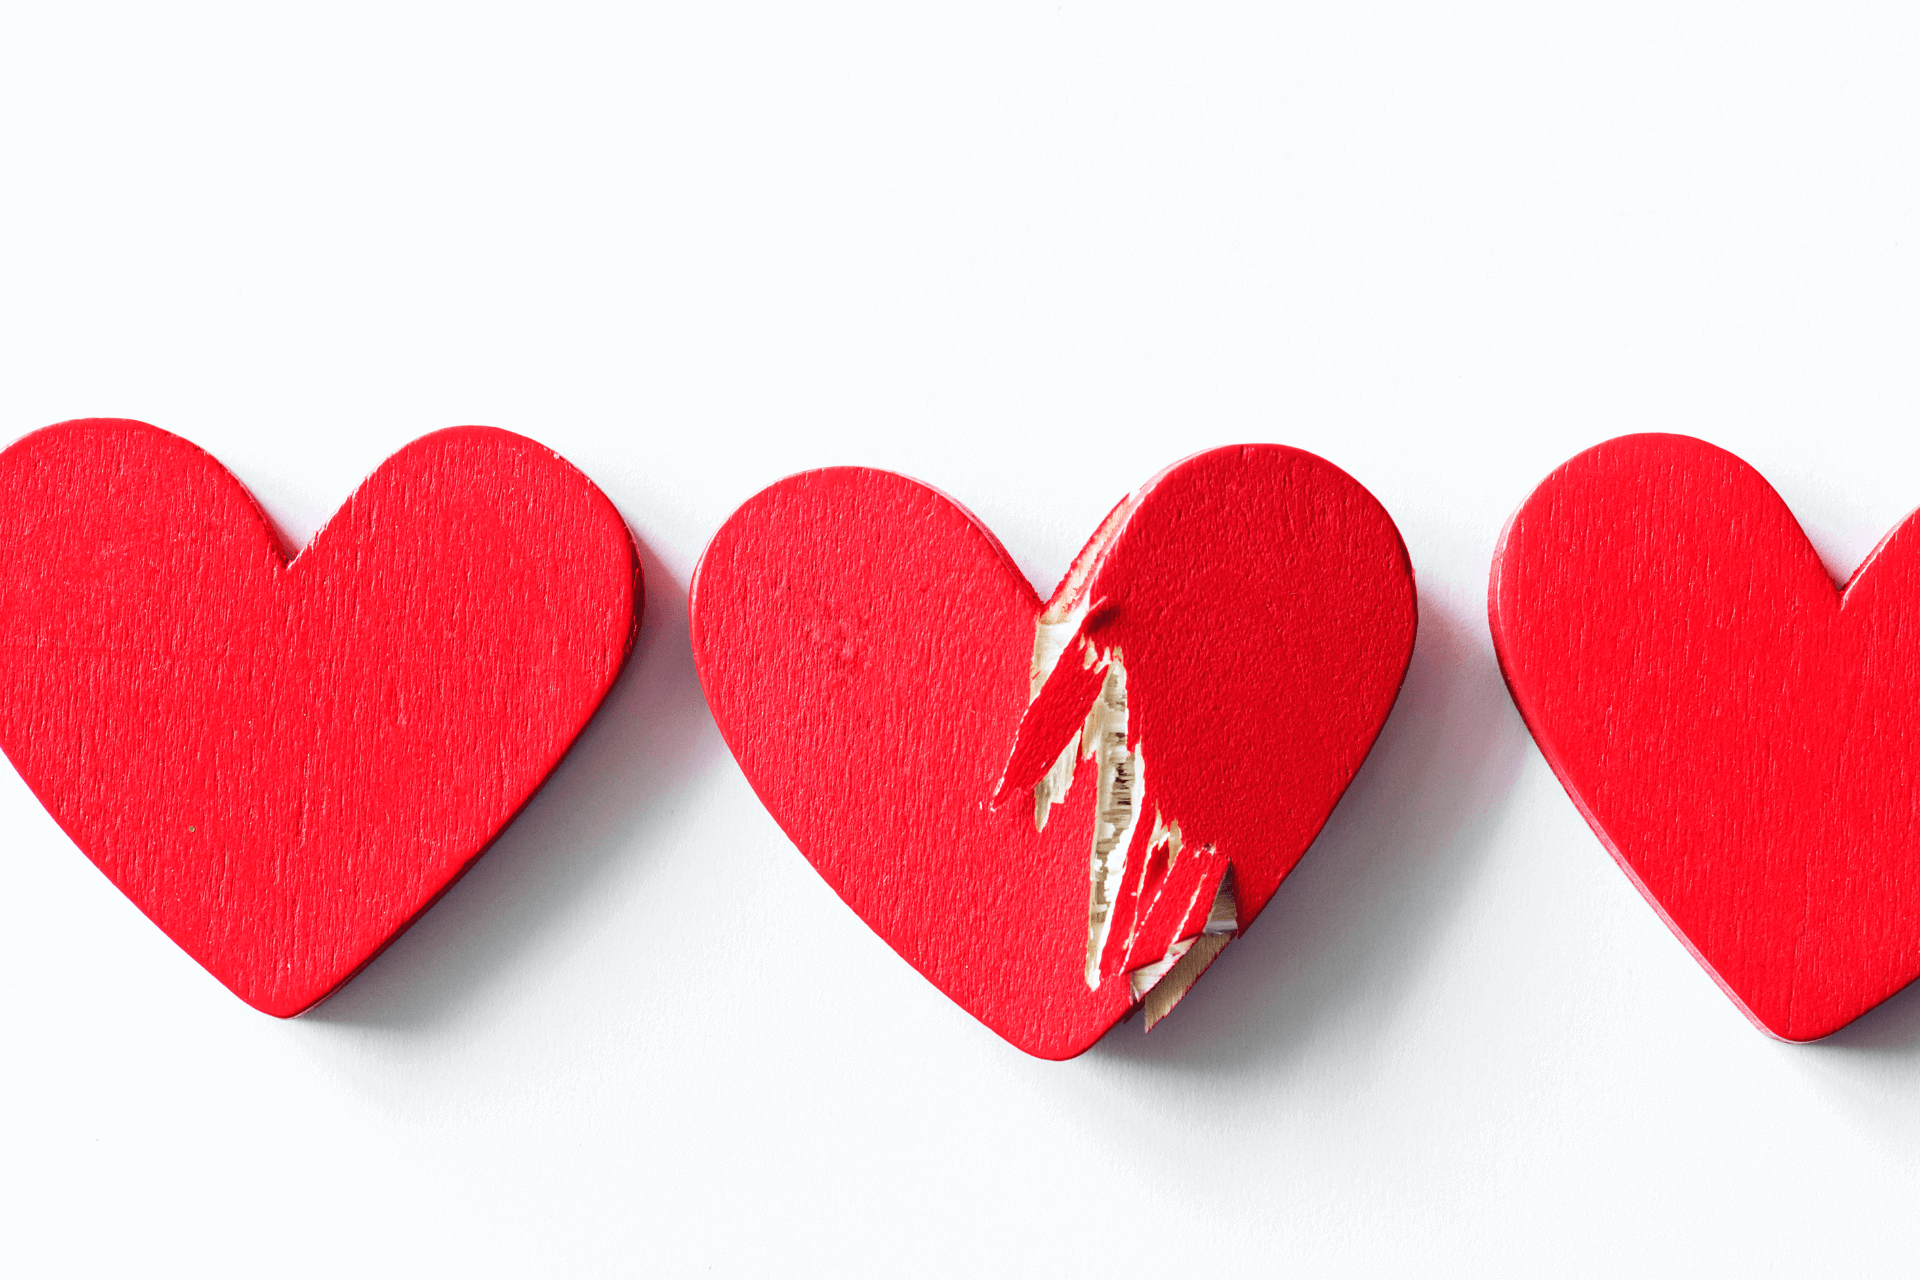 This image shows a heart made of wood that broken and portrays the importance of marketing and communication for successful fundraising